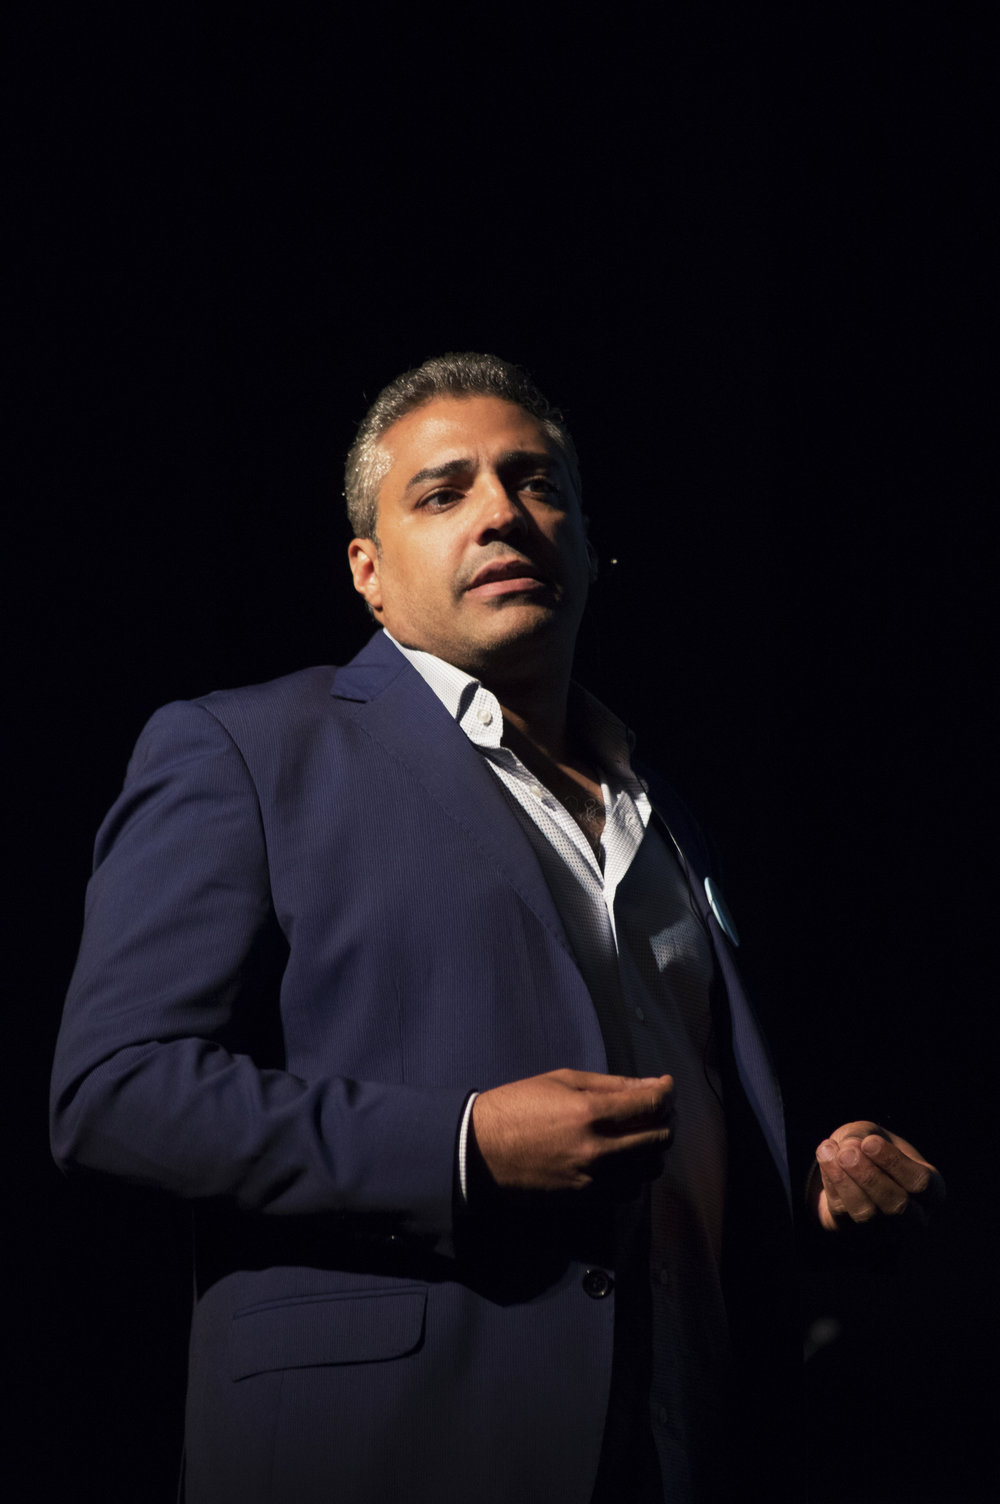 Journalist Mohammed Fahmy at a Lecture on Terrorism and Journalism in the Middle East (December 14 2016)